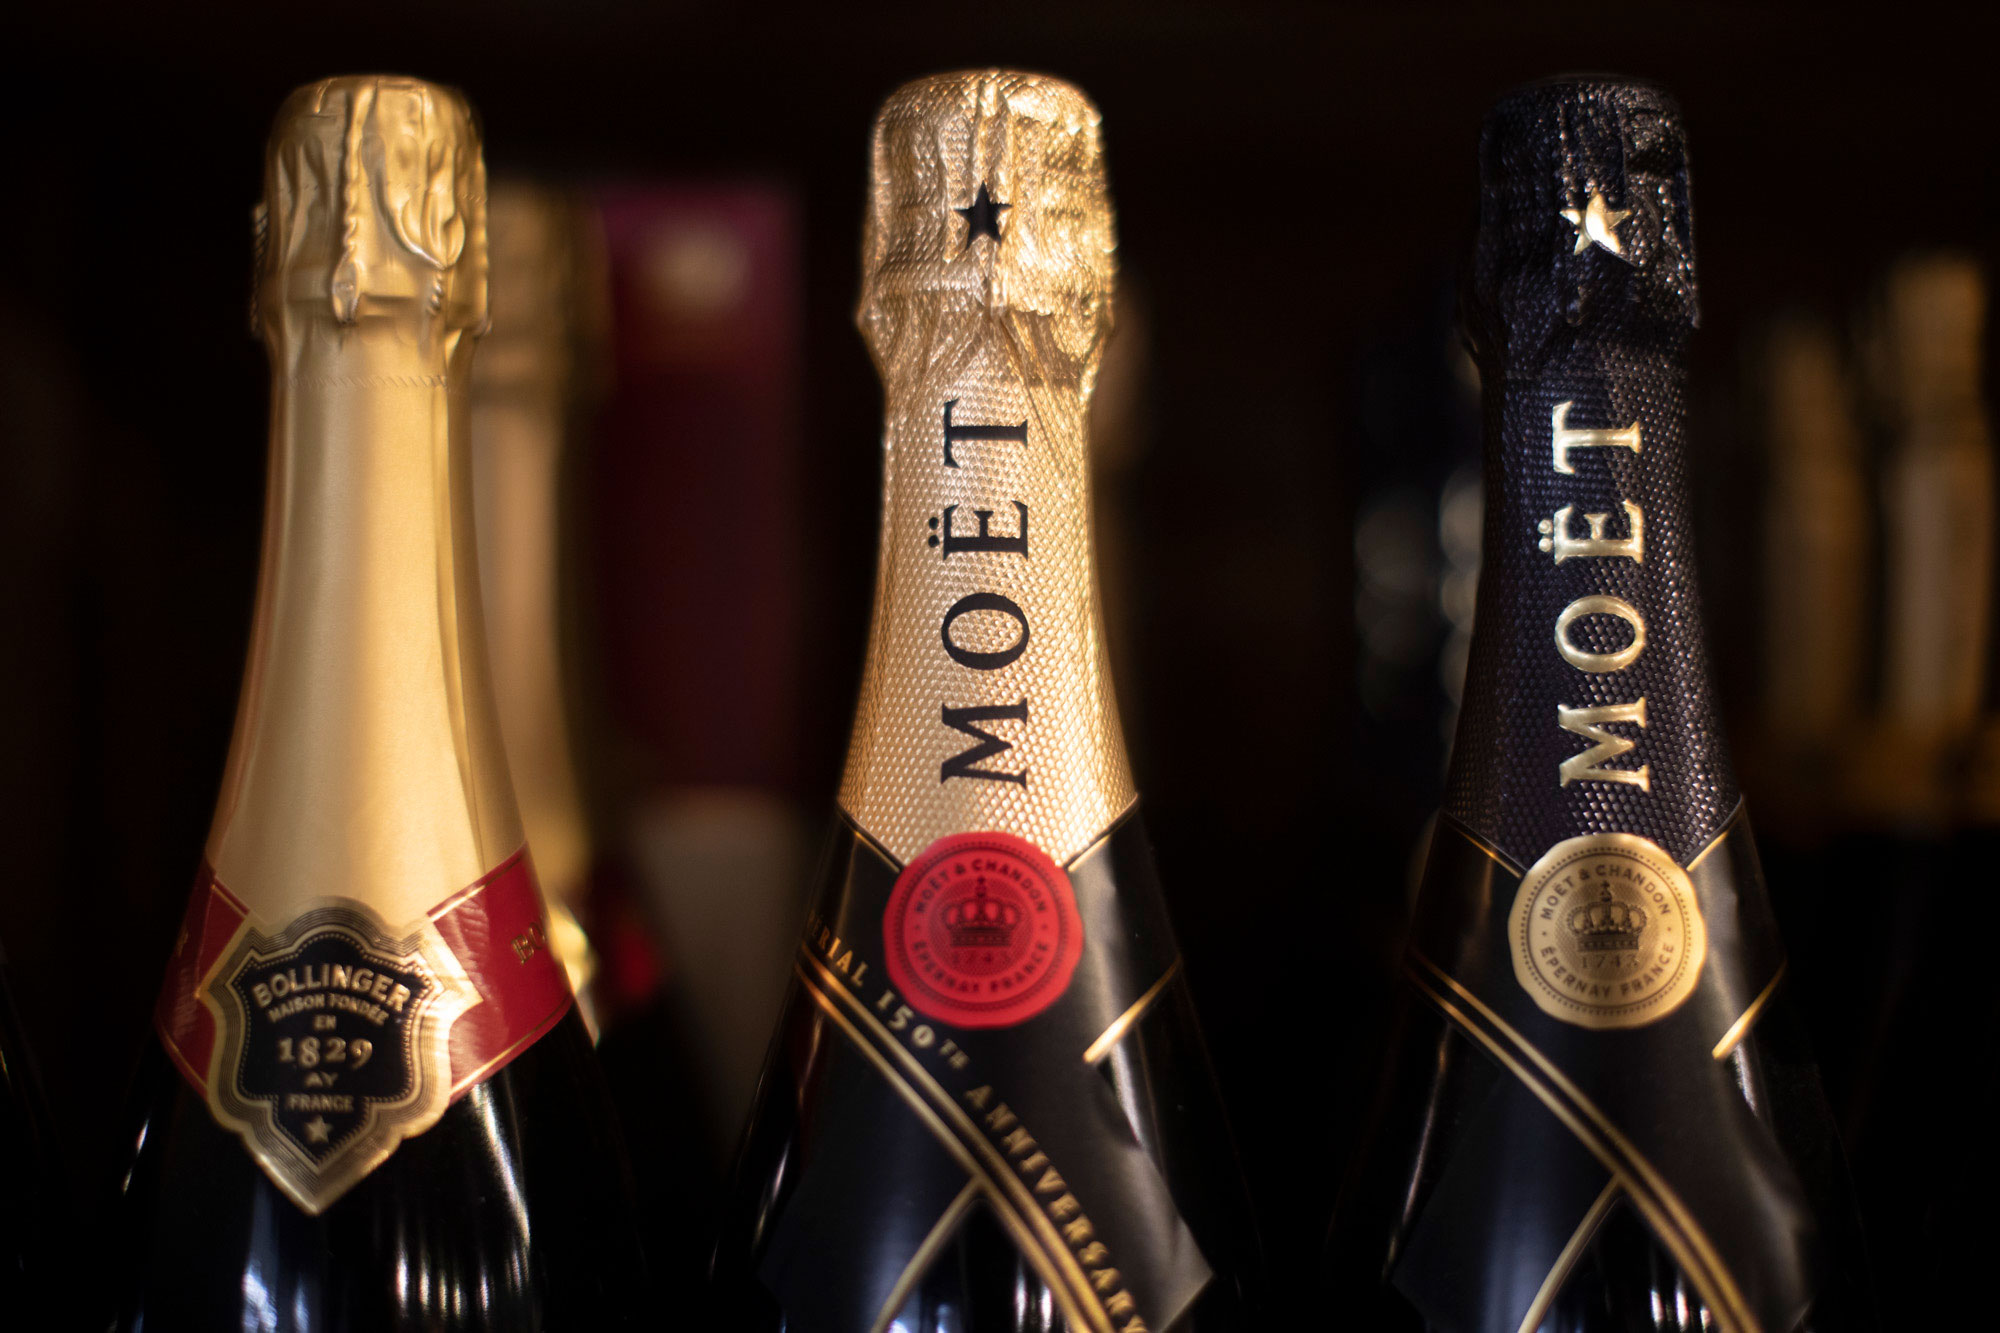 close up of champagne bottles on the shelf